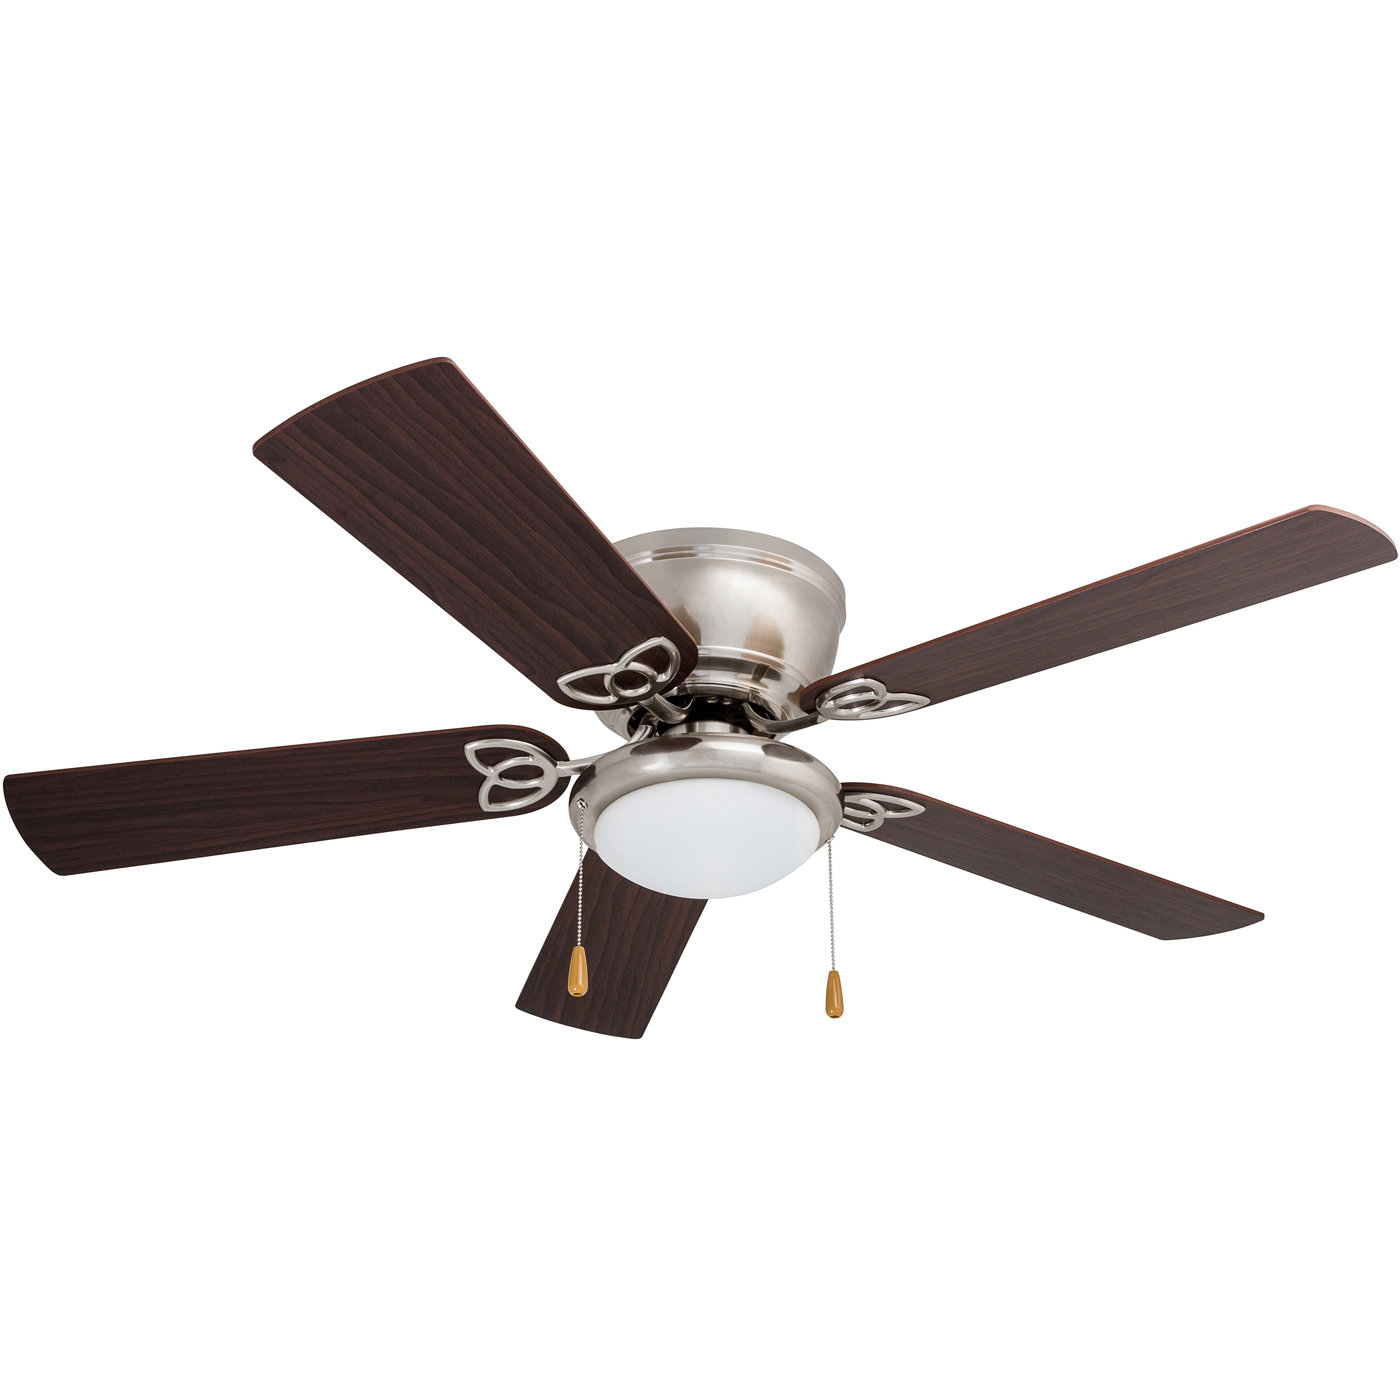 """52"""" Mattias 5 Blade Ceiling Fan, Light Kit Included With Regard To Newest Conroy 5 Blade Ceiling Fans (View 5 of 20)"""